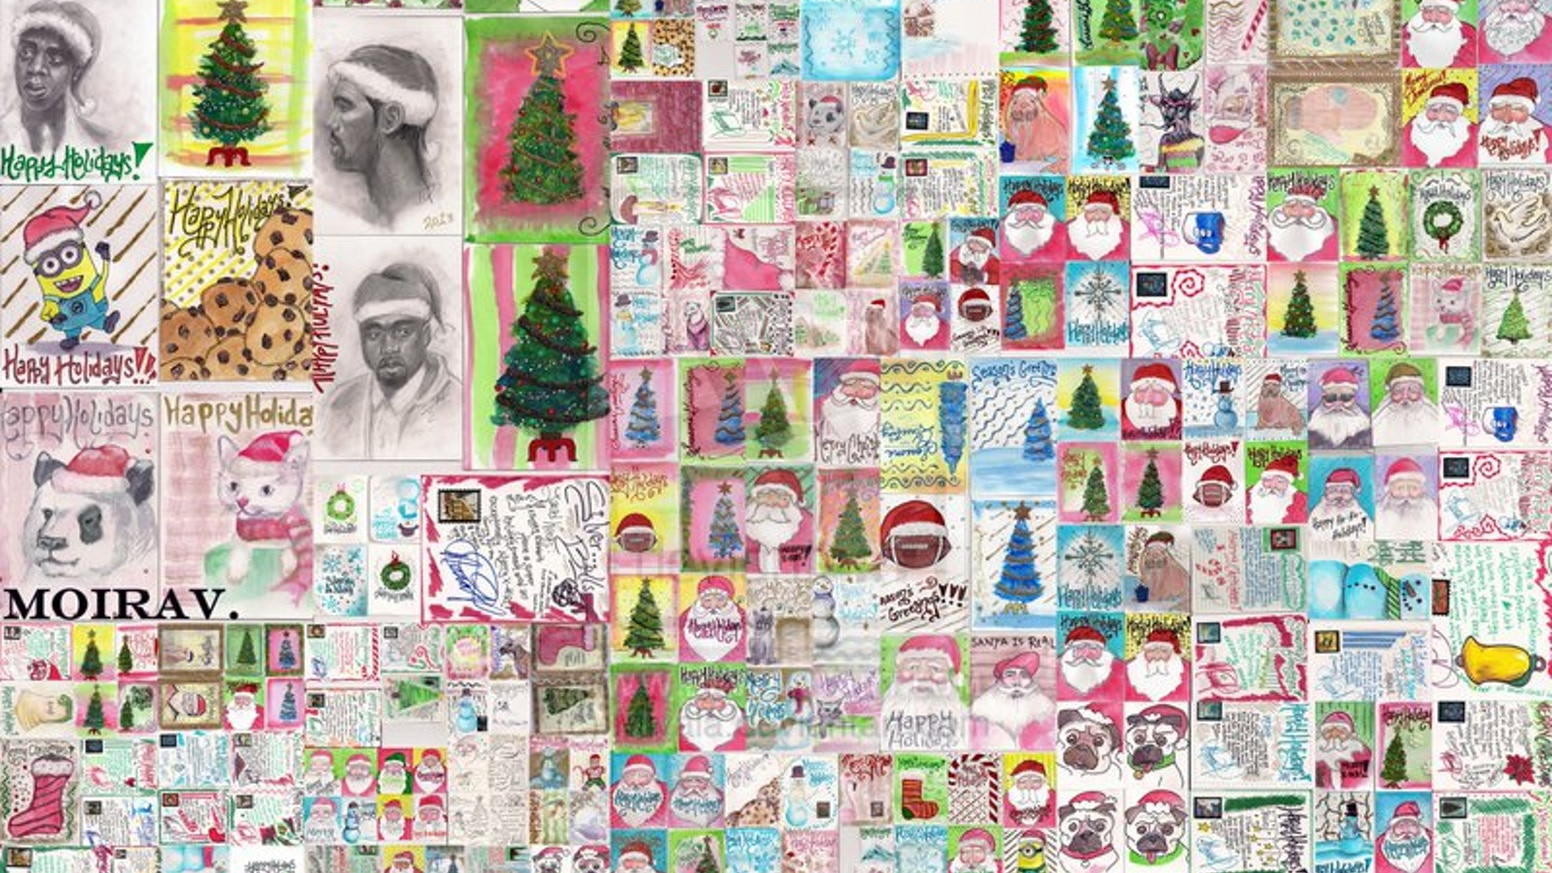 New Year Greeting Card Project By Moira Kickstarter